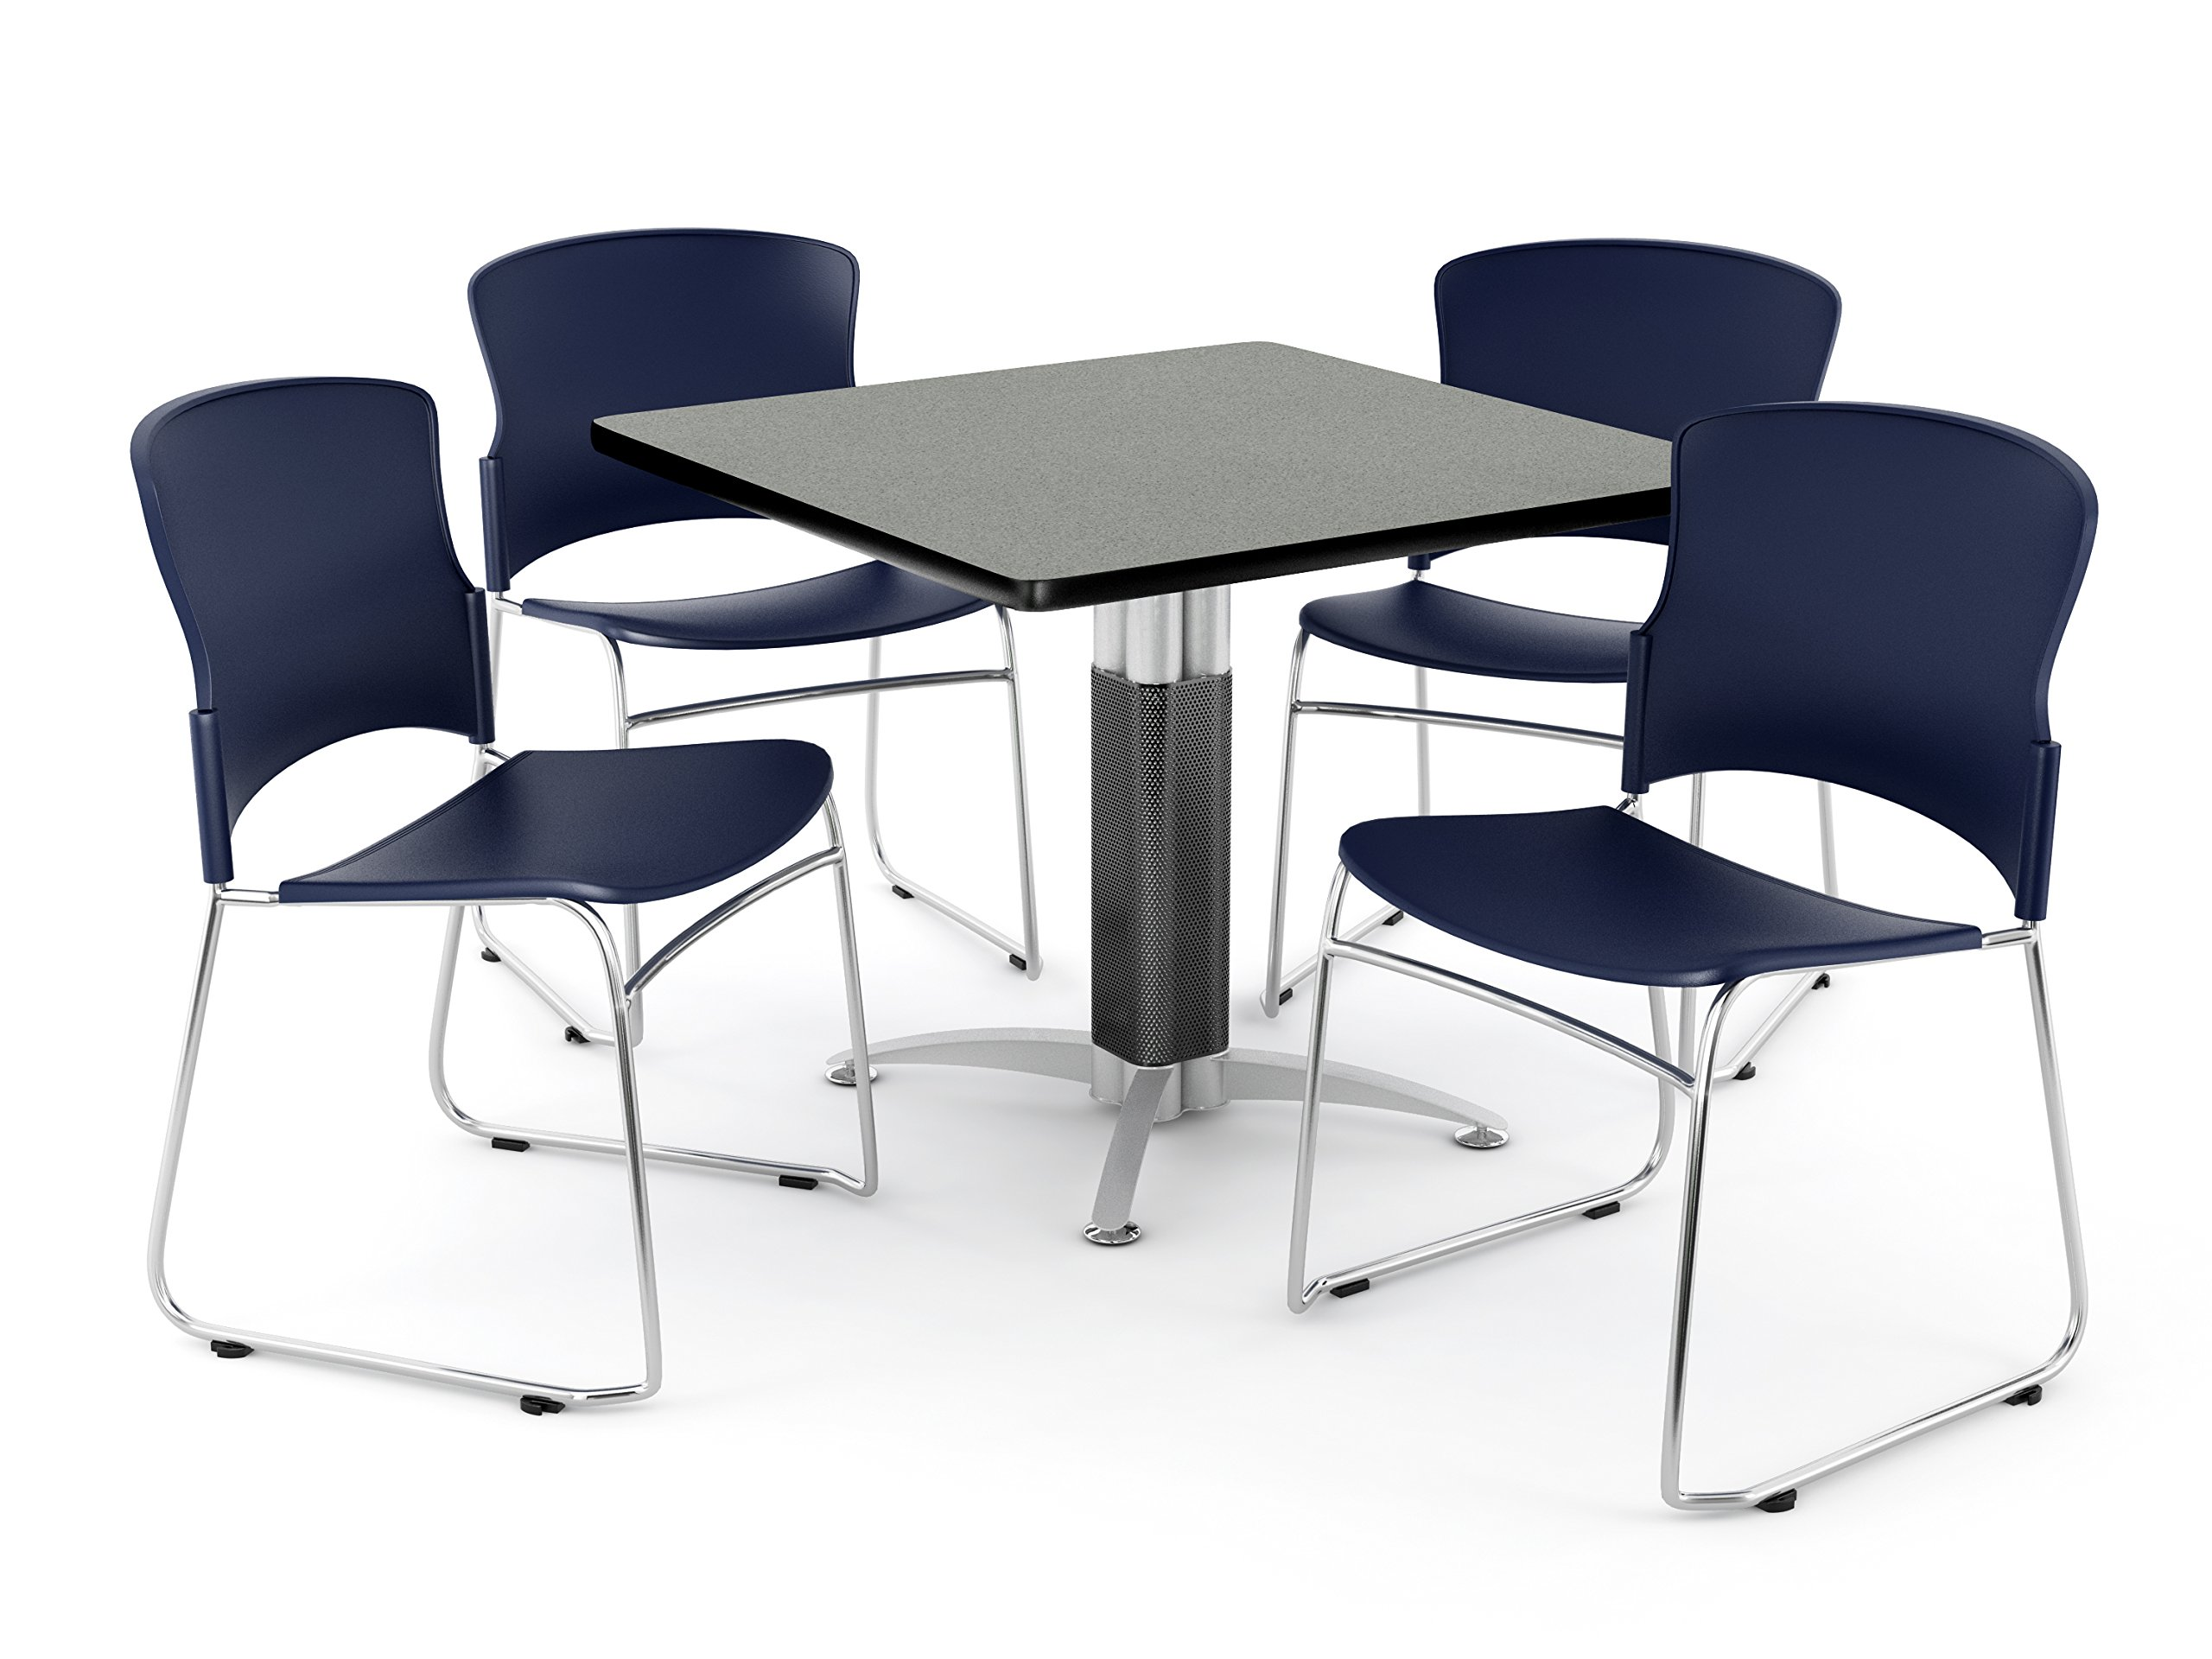 OFM Core Collection Breakroom Set, 36'' Square Metal Mesh Base Multi-Purpose Table in Gray Nebula, 4 Multi-use Plastic Stack Chairs in Navy (PKG-BRK-028-0008)